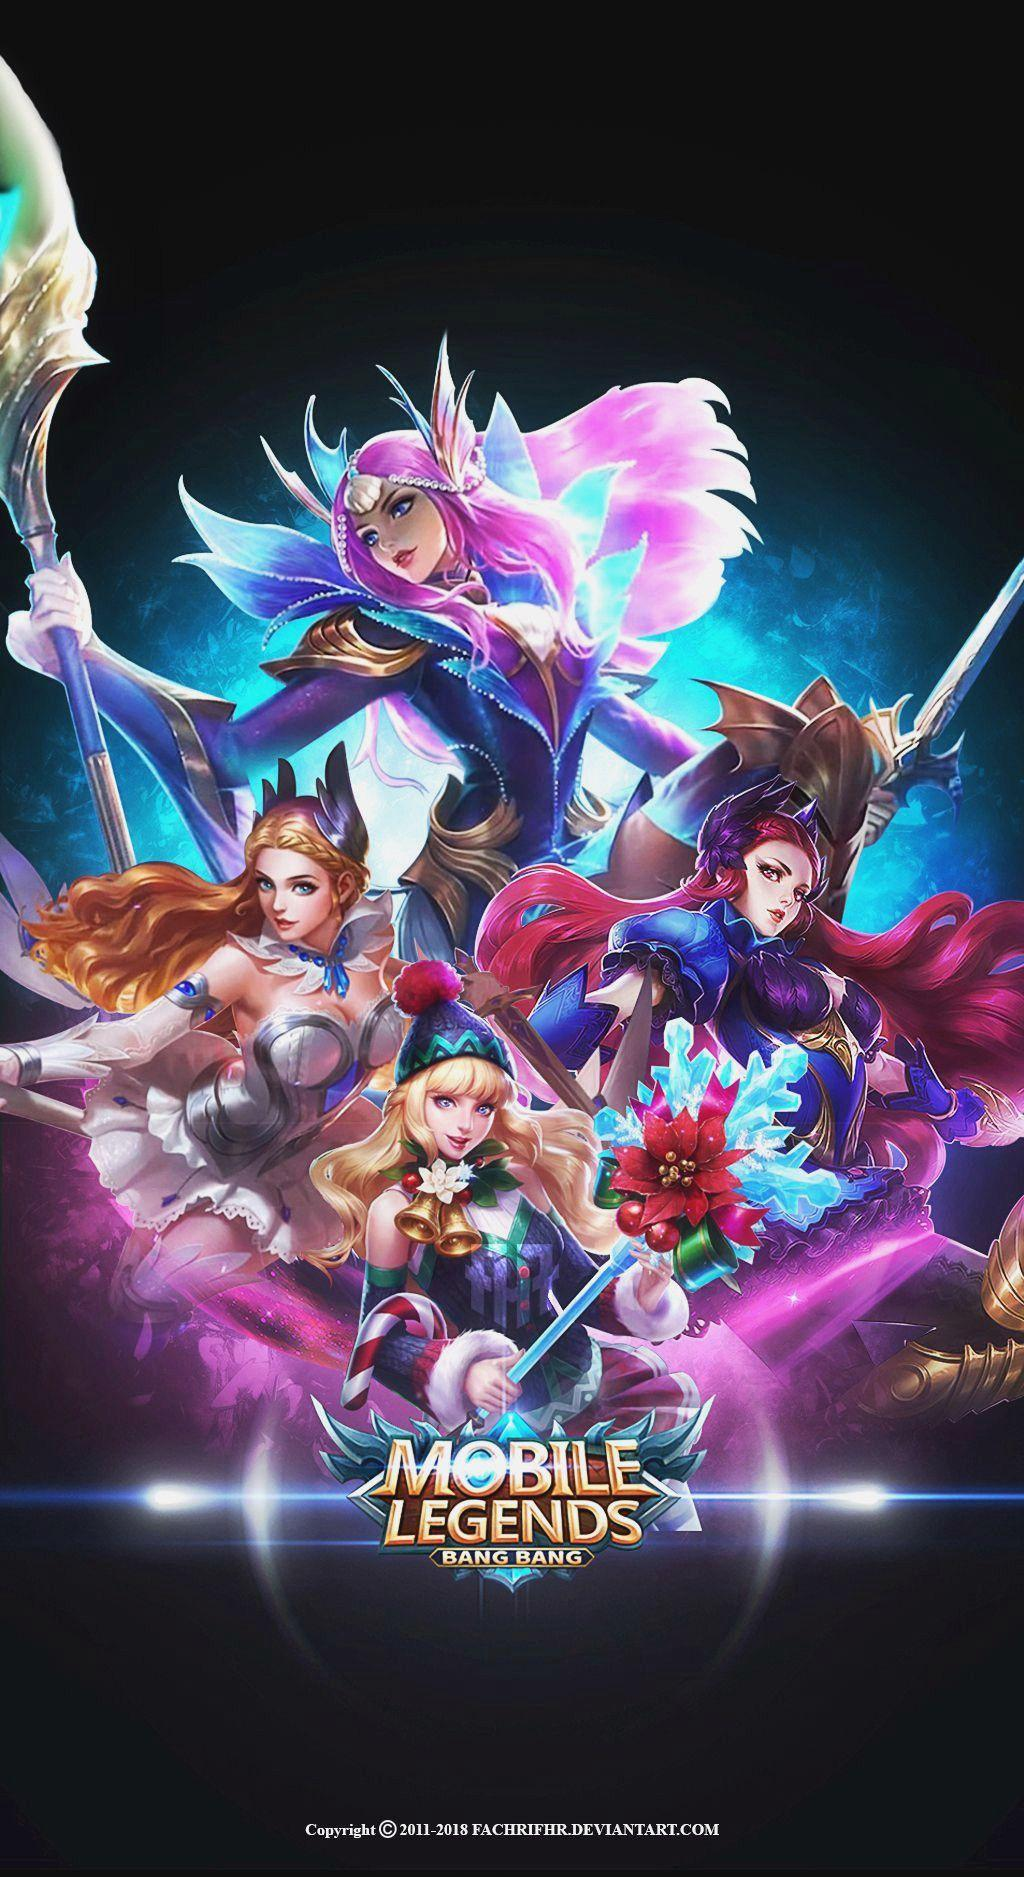 Mobile Legends Hd New Skin Wallpapers Wallpaper Cave